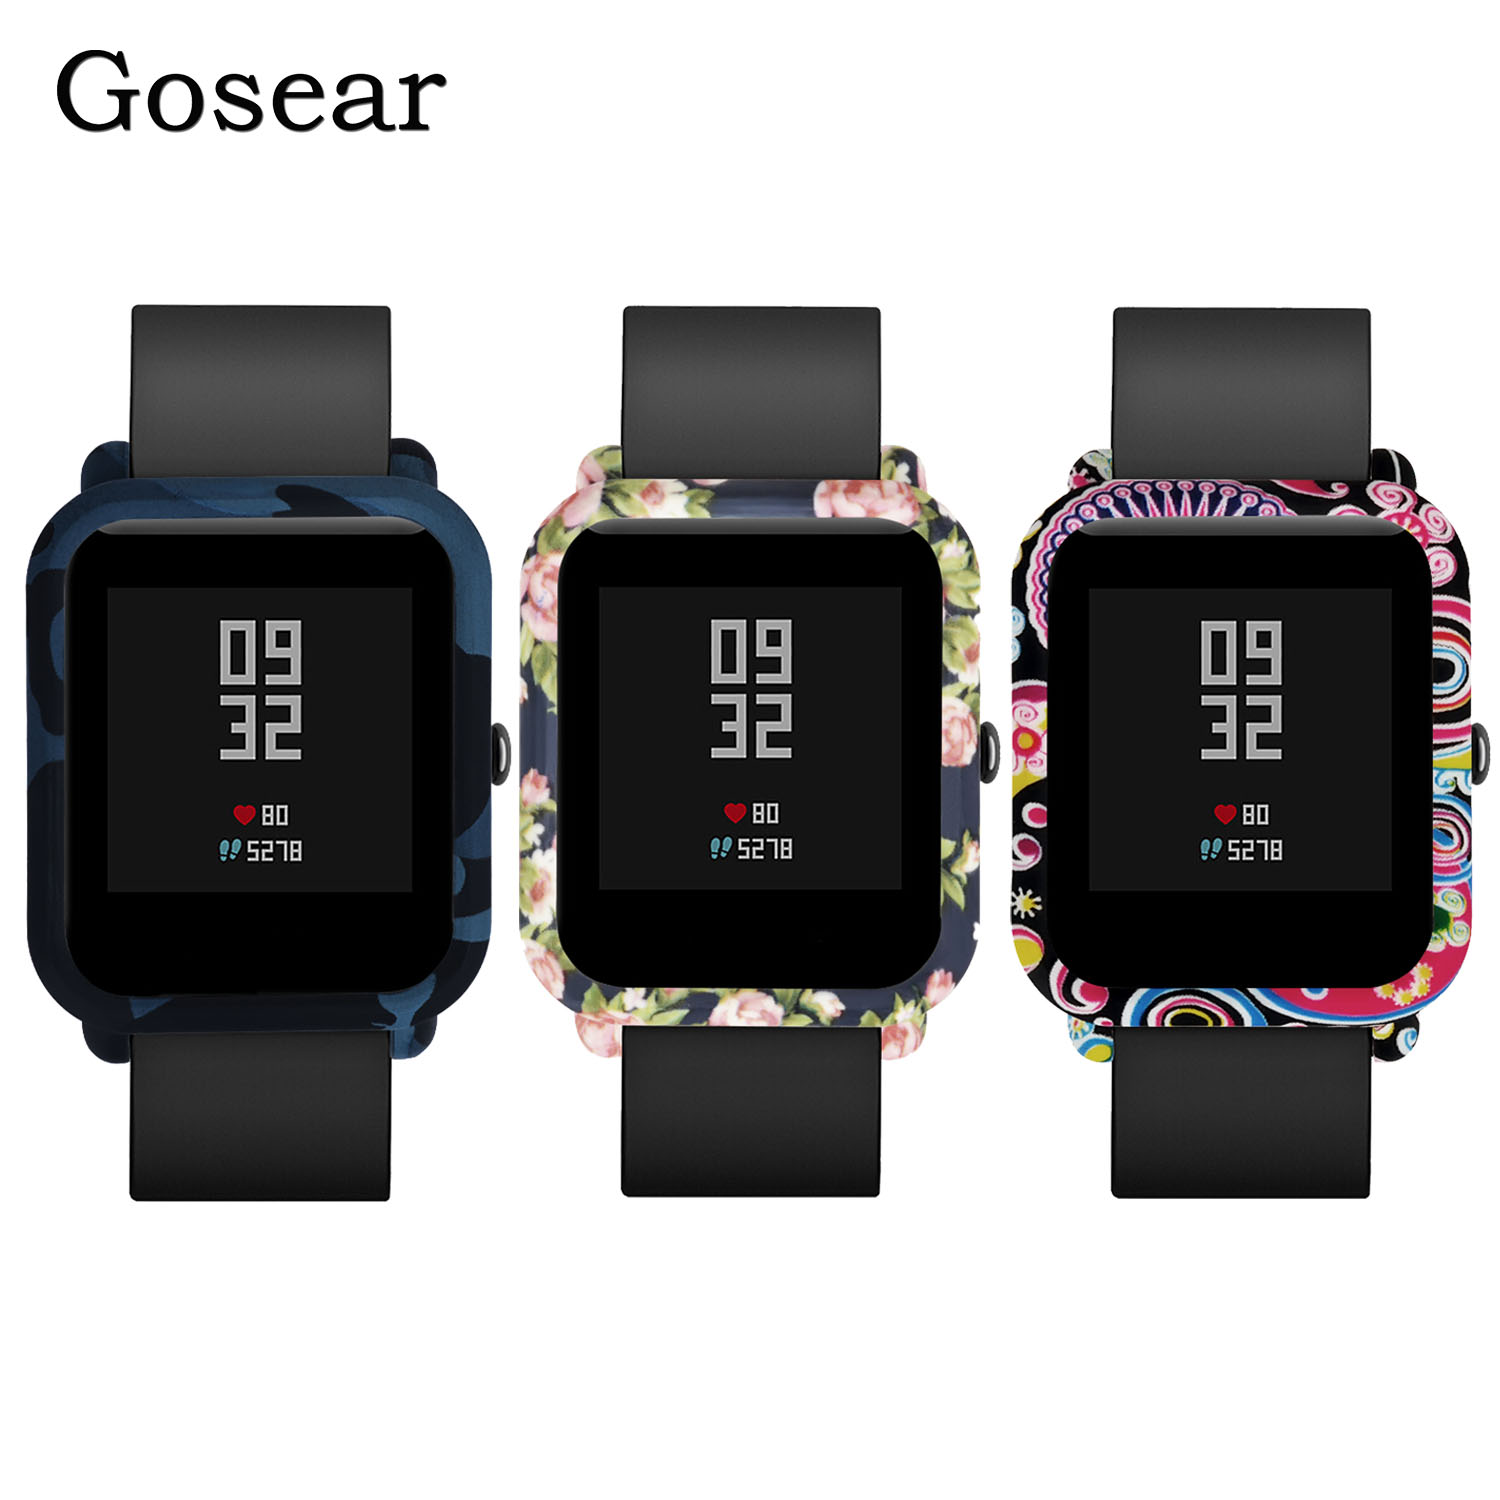 Gosear Protector Protective Frame Case Cover Shell Dust proof Anti scratch Accessories for Xiaomi Huami Amazfit Bip Youth WatchUSD 2 27 piece